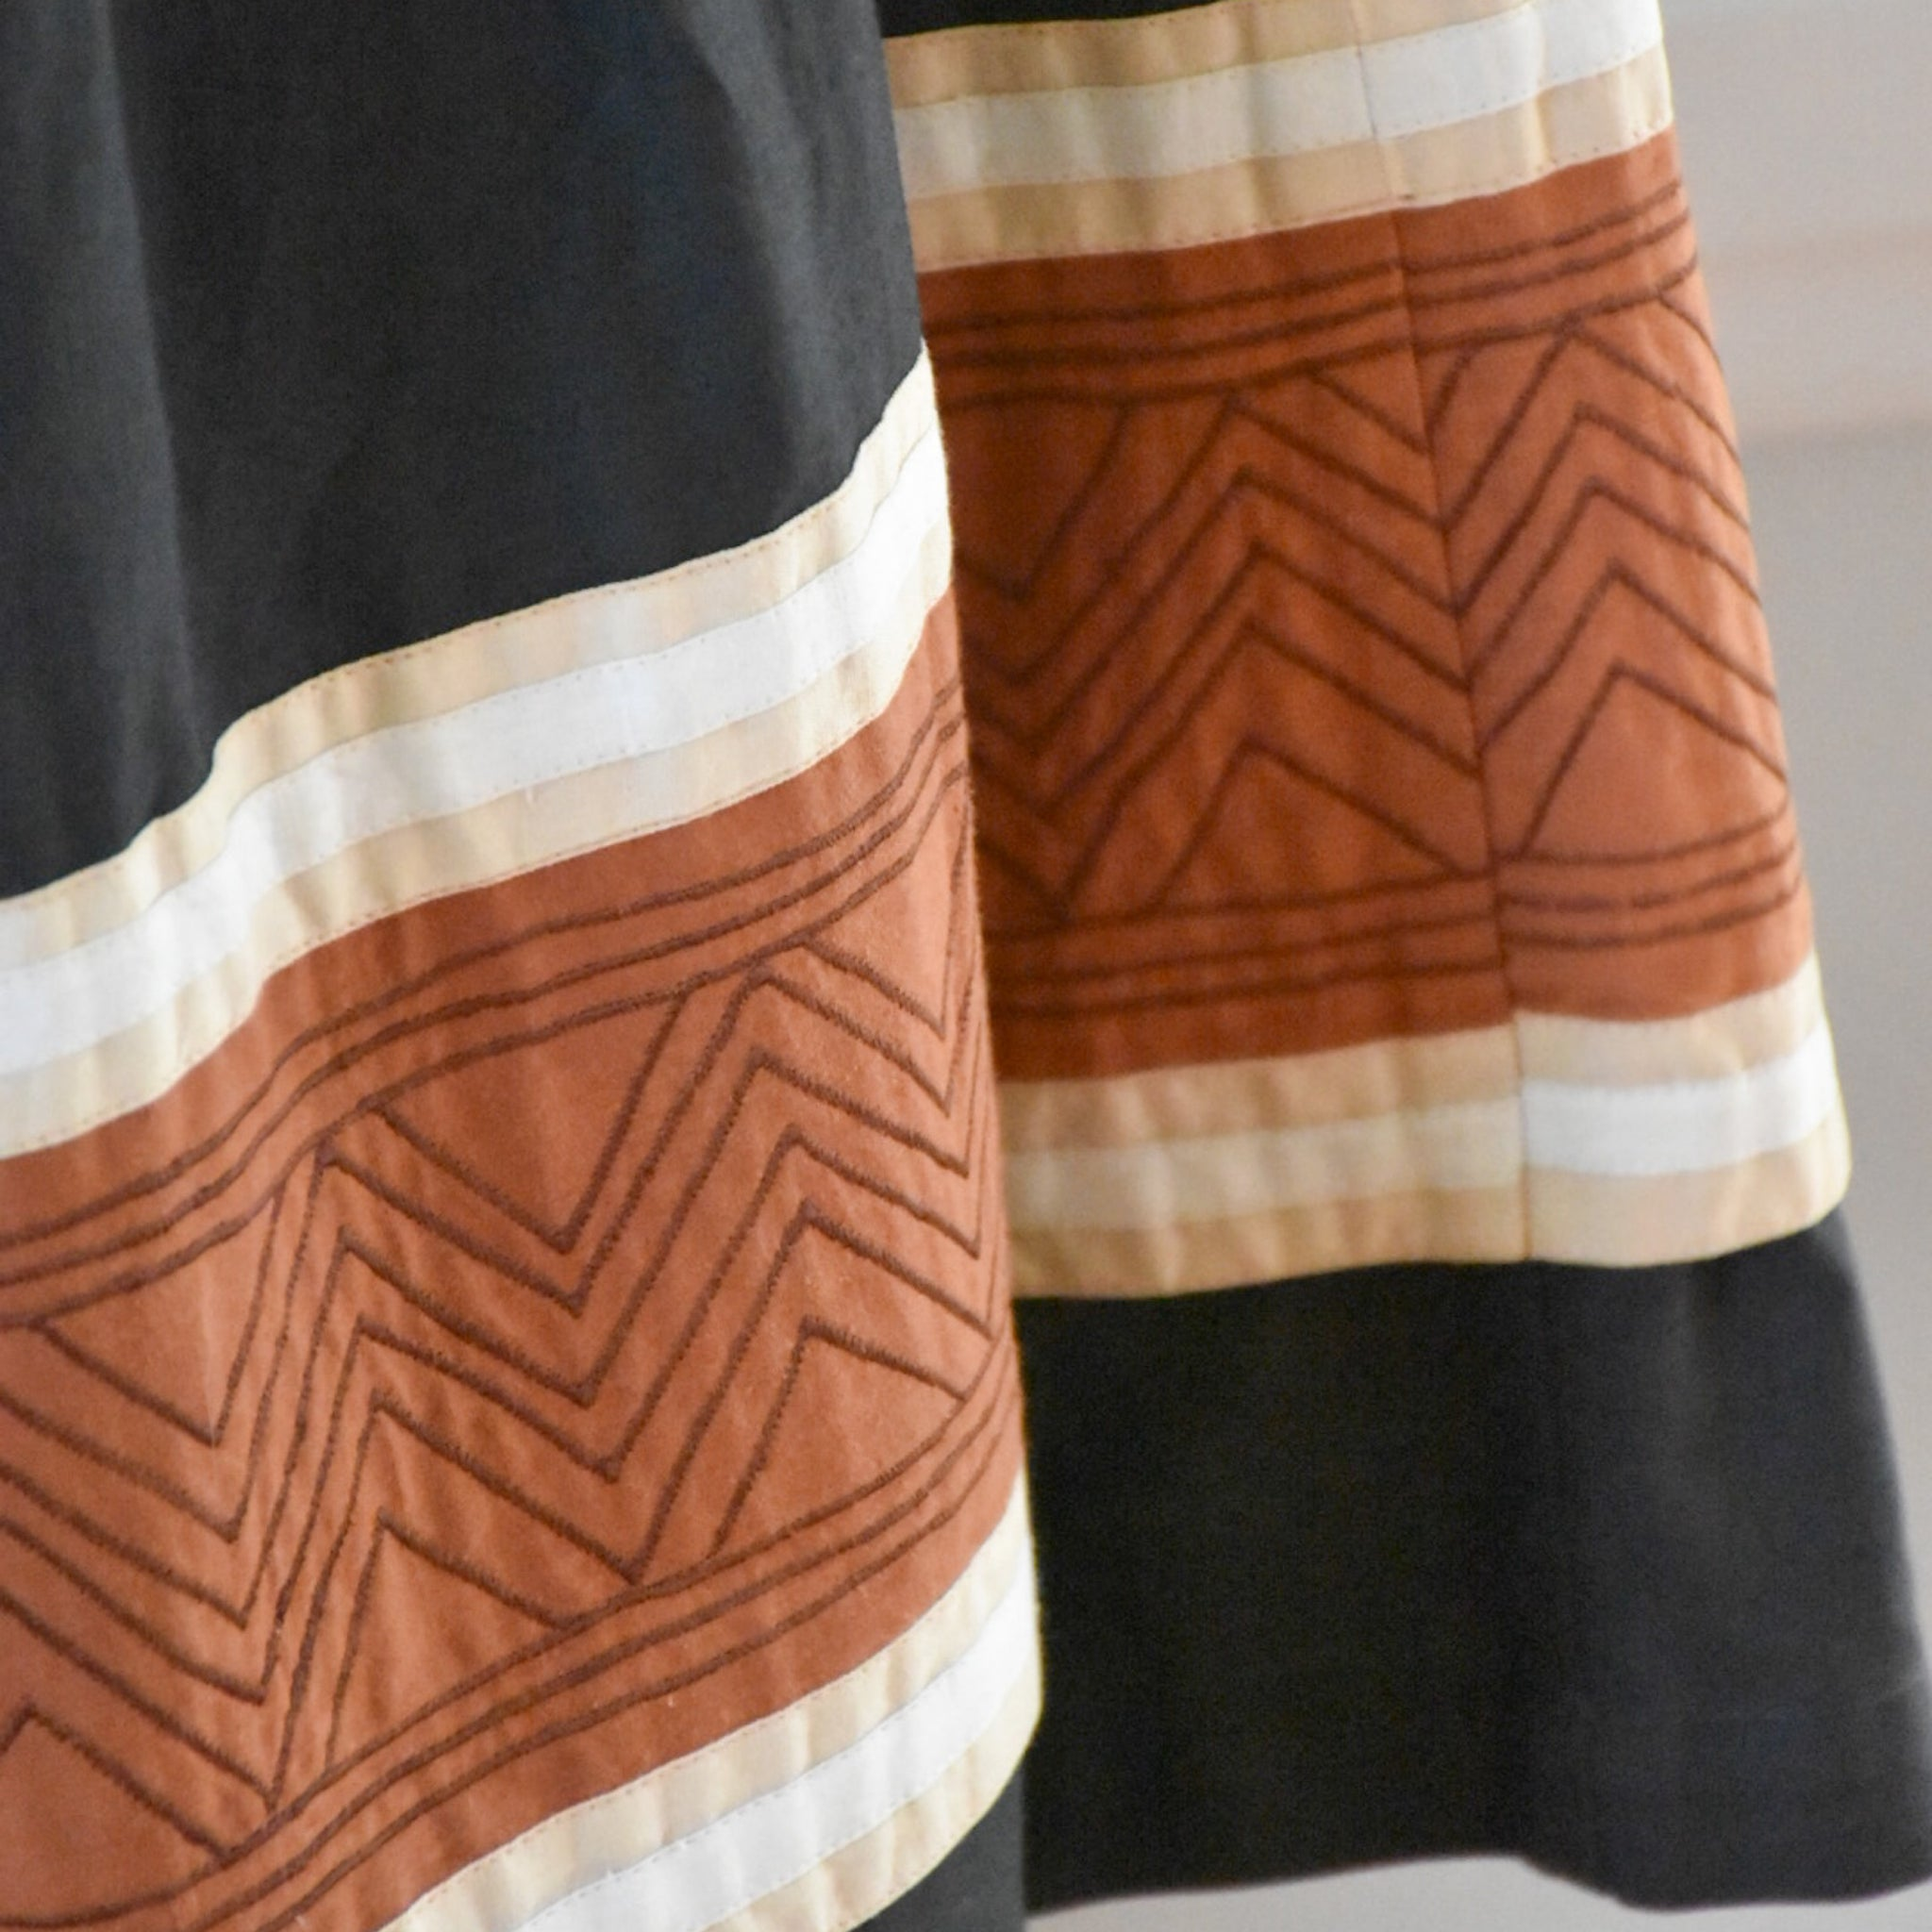 70s / 80s Vintage Midi Skirt from Duncanlovestess.com